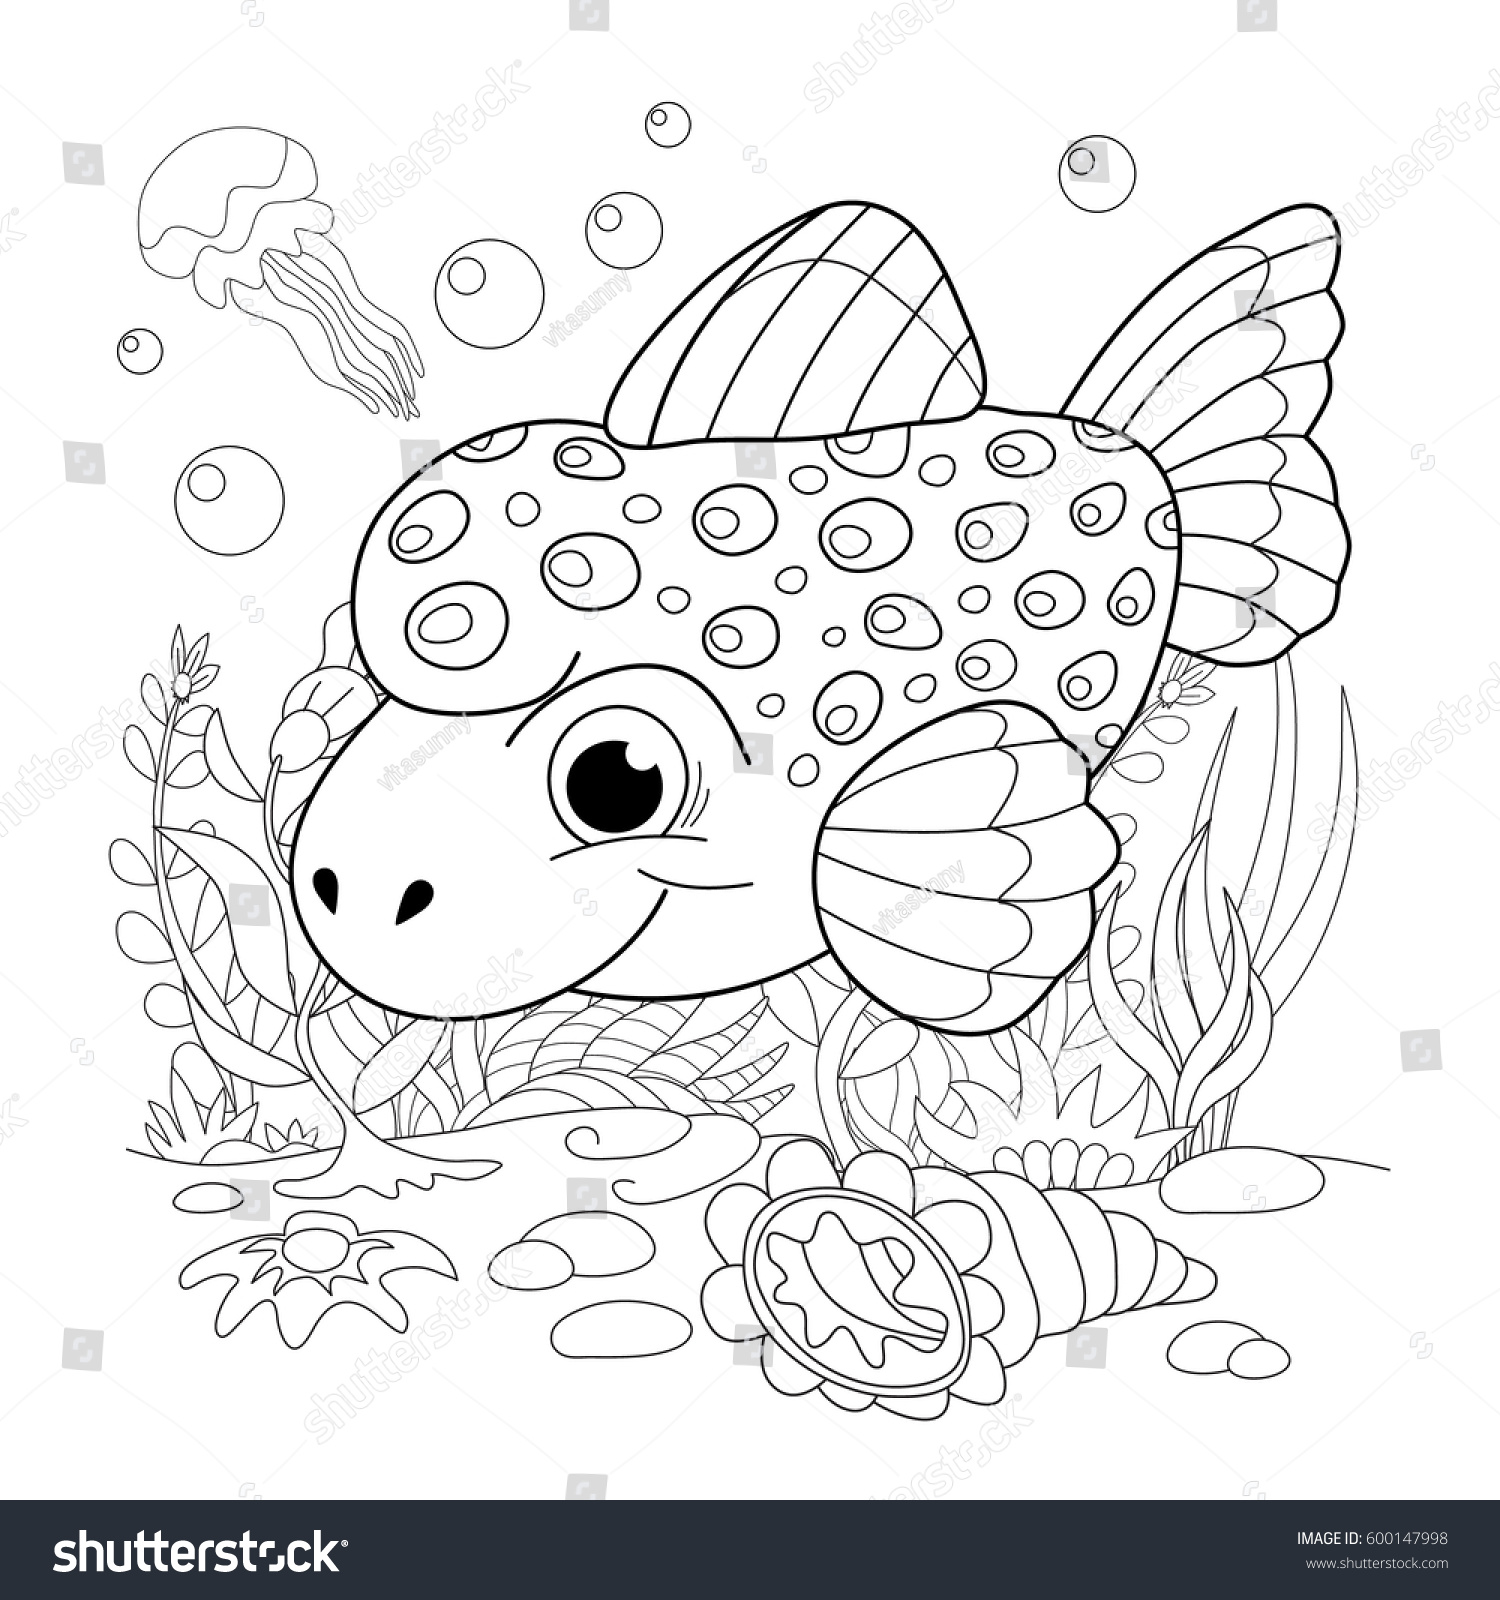 Cartoon Fanny Fish Underwater Life Sea Stock Vector